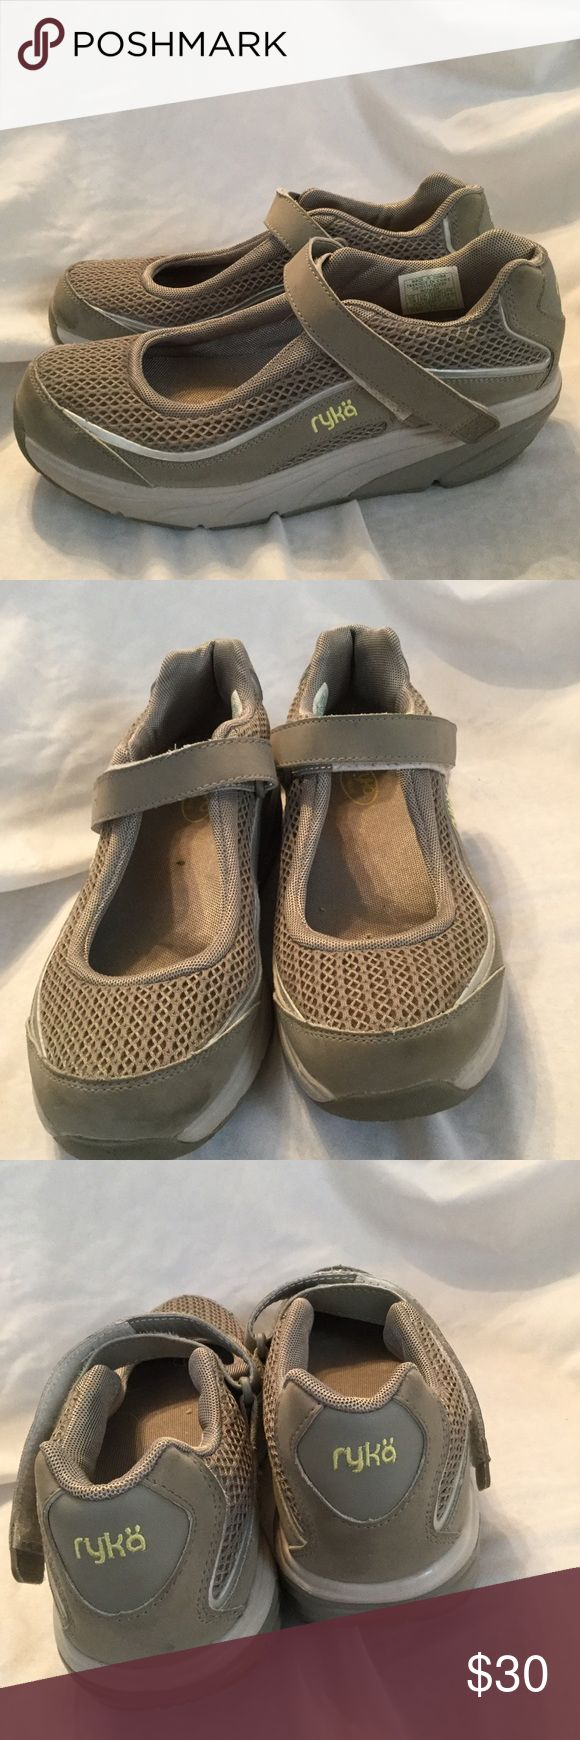 Ryka Shape up Velcro Mary Jane sneaker Great for getting in shape, wide width, excellent condition. Shoes